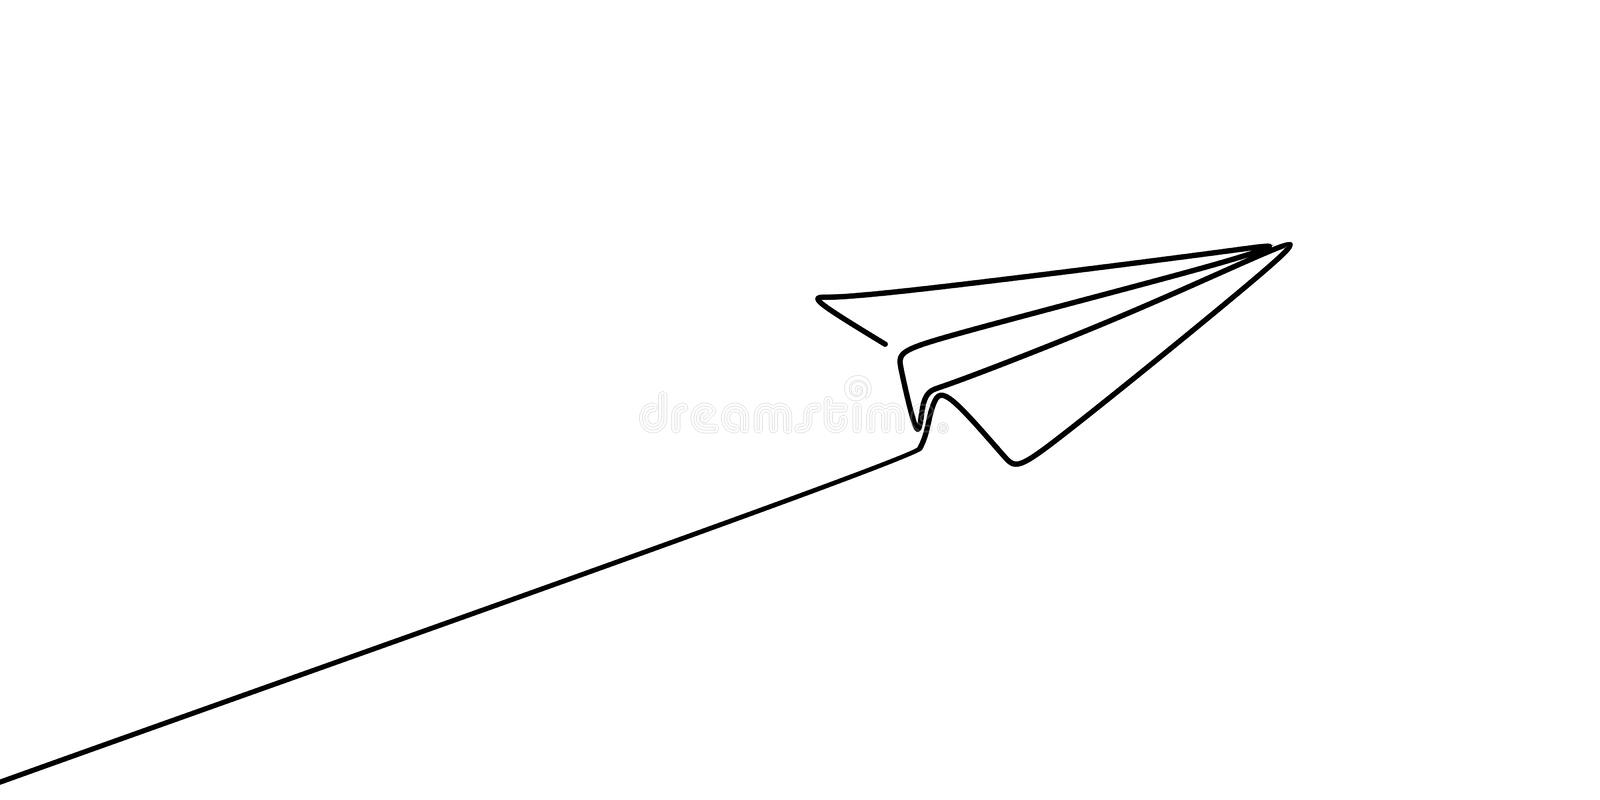 Continuous line drawing of paper plane vector illustration royalty free illustration